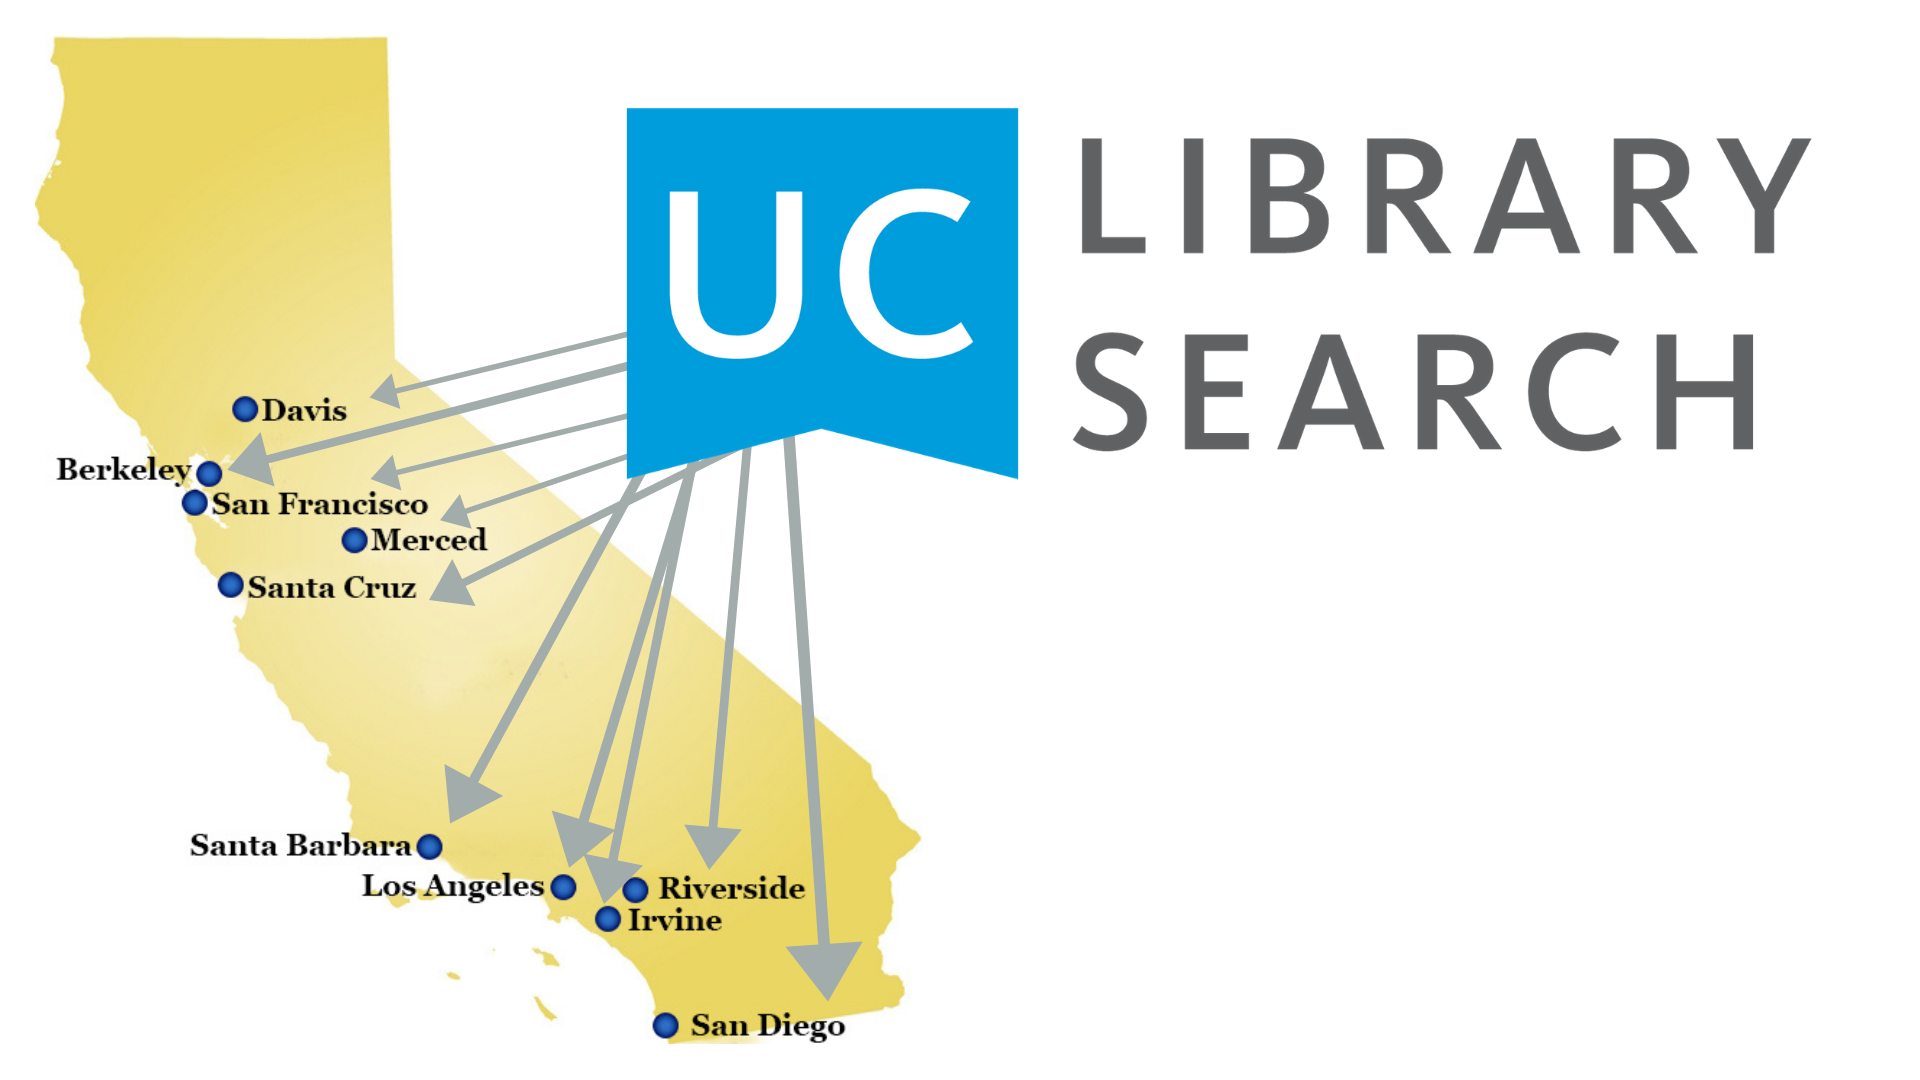 UC Library Search state of California logo